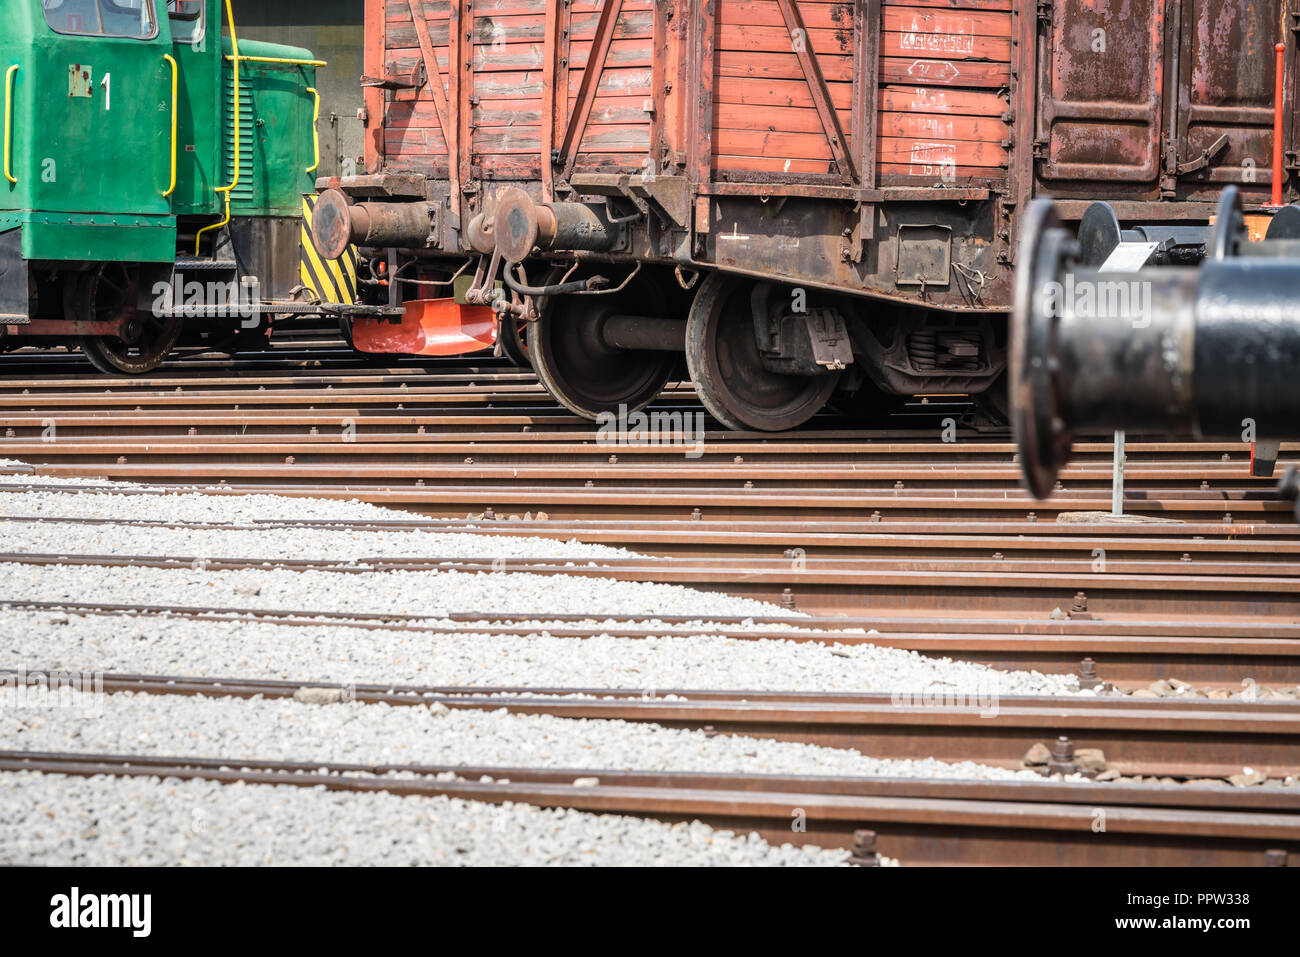 Jaworzyna Slaska, Poland - August 2018 : Old disused retro train locomotives and carriages on the side tracks in the depot in the Museum of Industry a - Stock Image